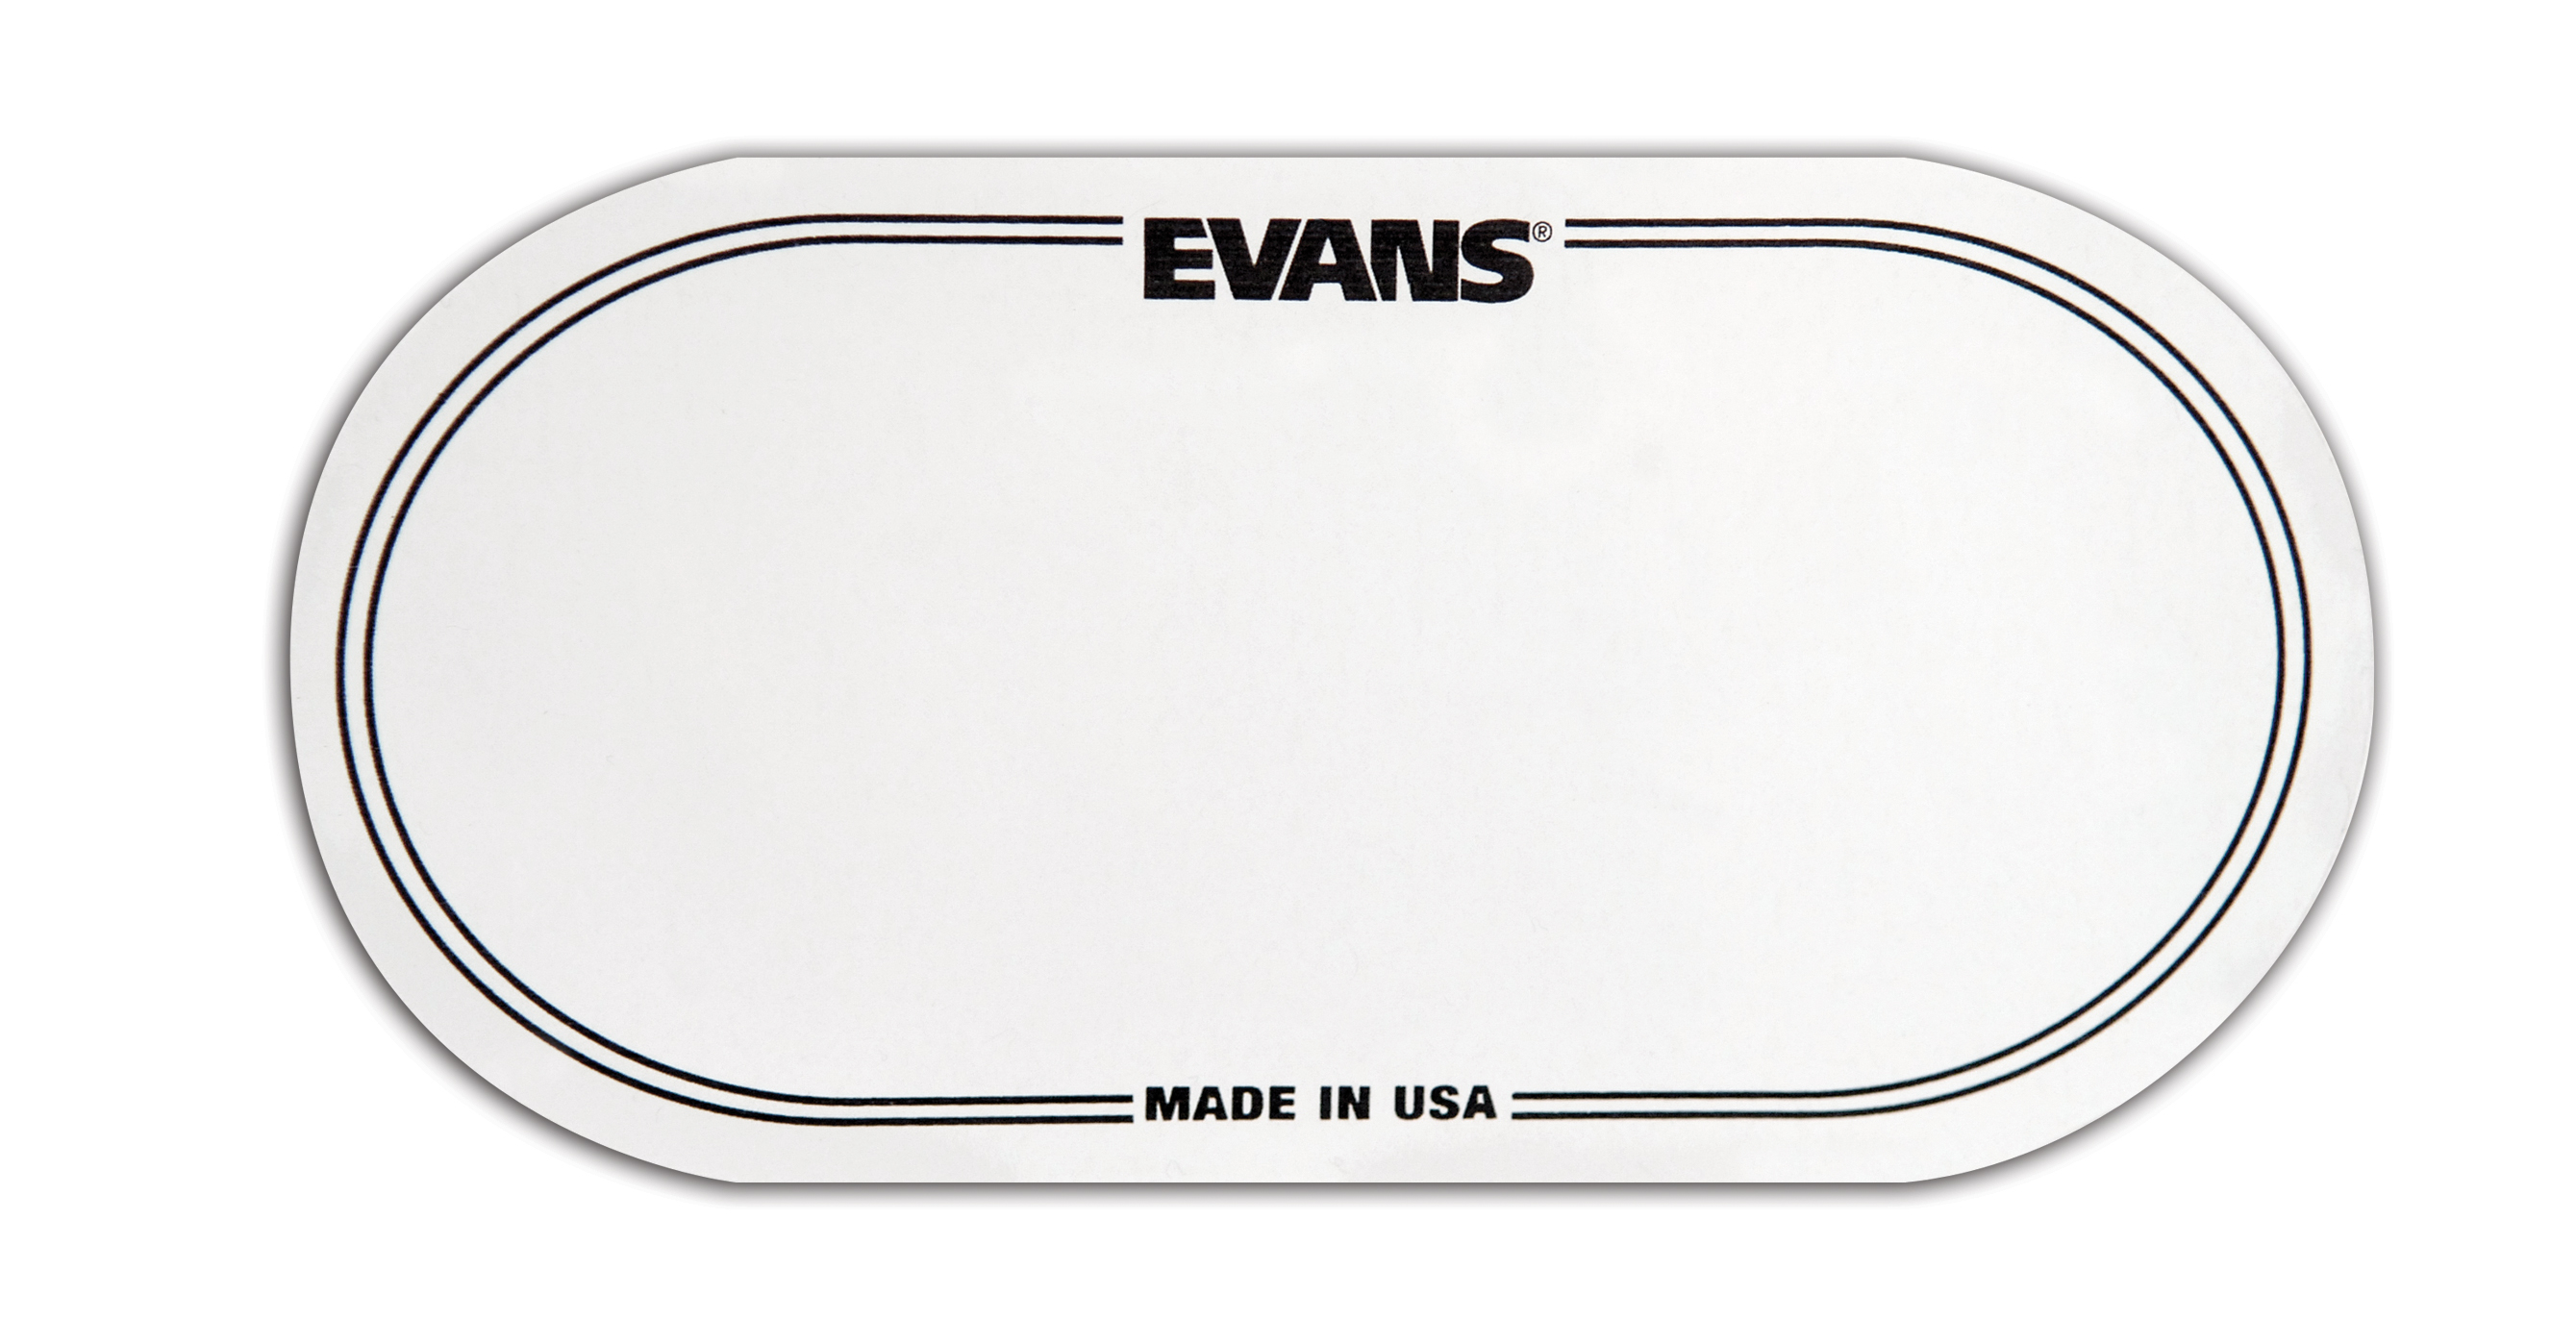 Evans Eq Double Pedal Patch Clear Plastic